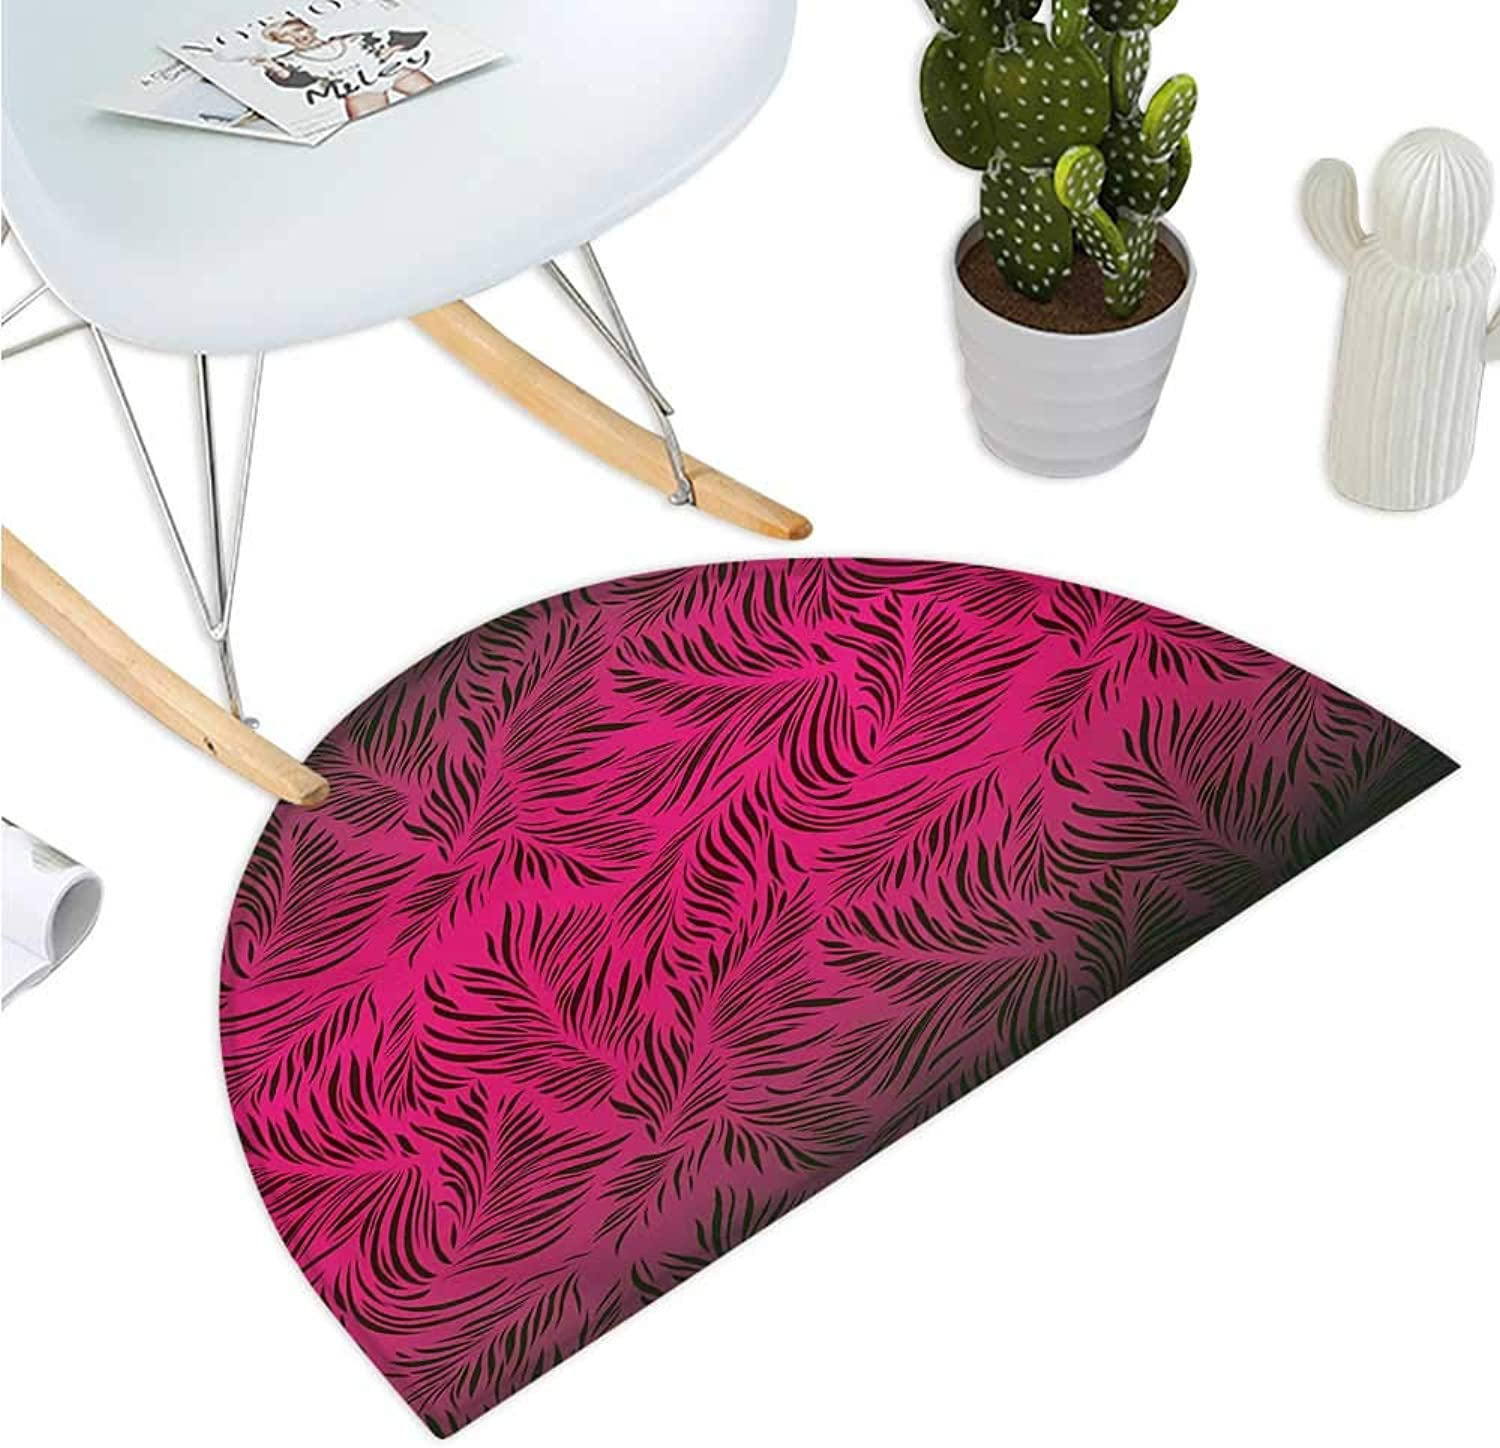 Nature Semicircular Cushion Palm Trees Hawaiian Forest Tropic Island Theme Leaves Ombre Artwork Image Print Entry Door Mat H 35.4  xD 53.1  Magenta Black